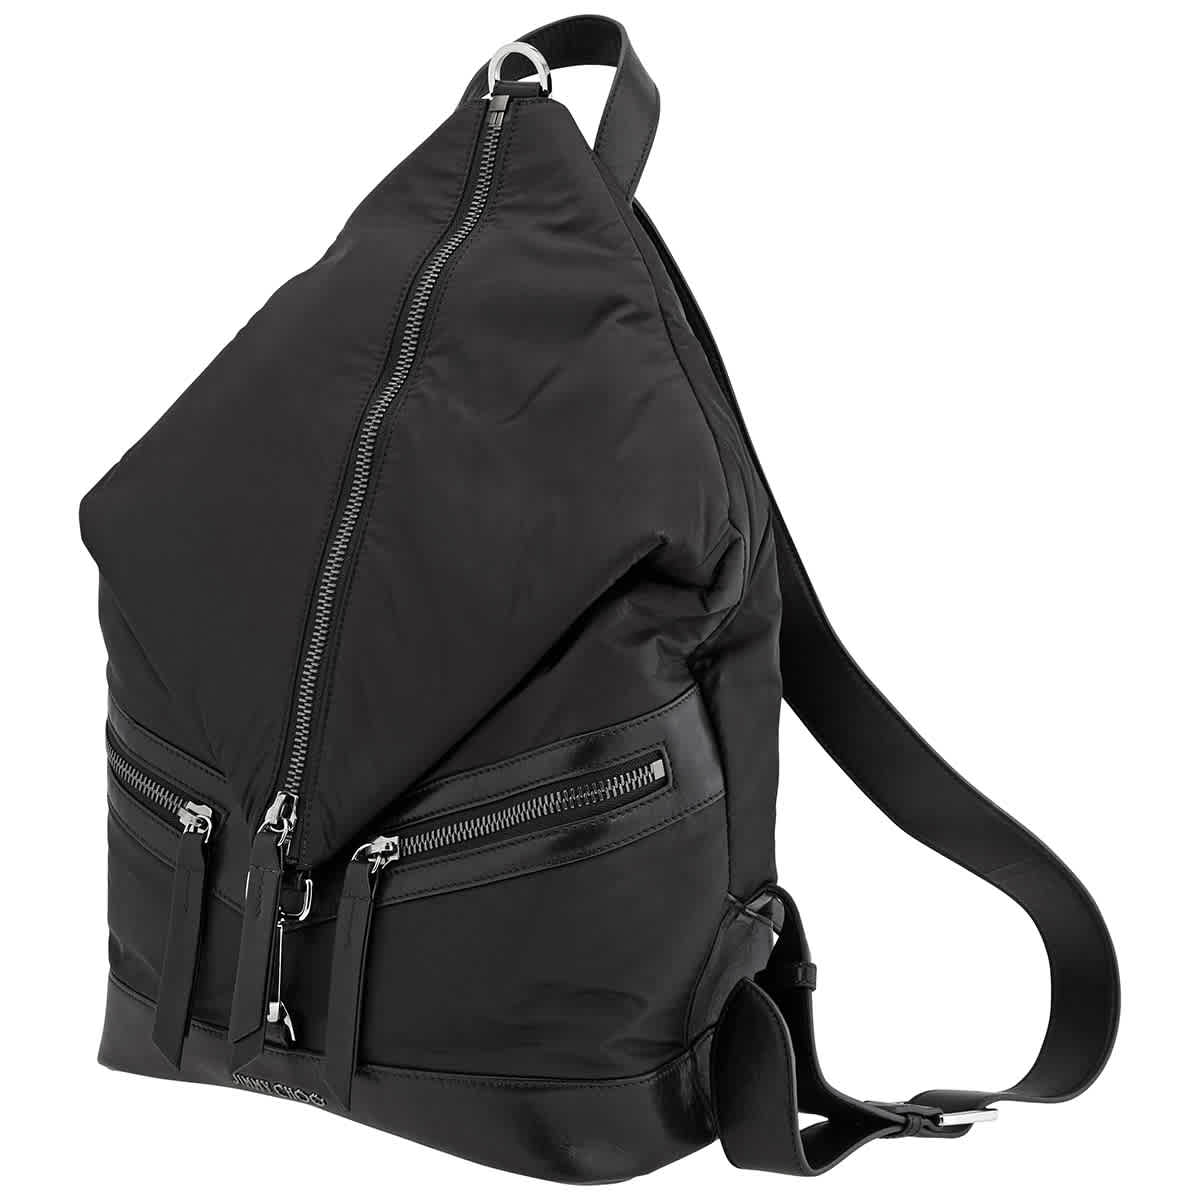 JIMMY CHOO MENS FITZROY/M SOFT NYLON AND SATIN LEATHER BACKPACK IN BLACK